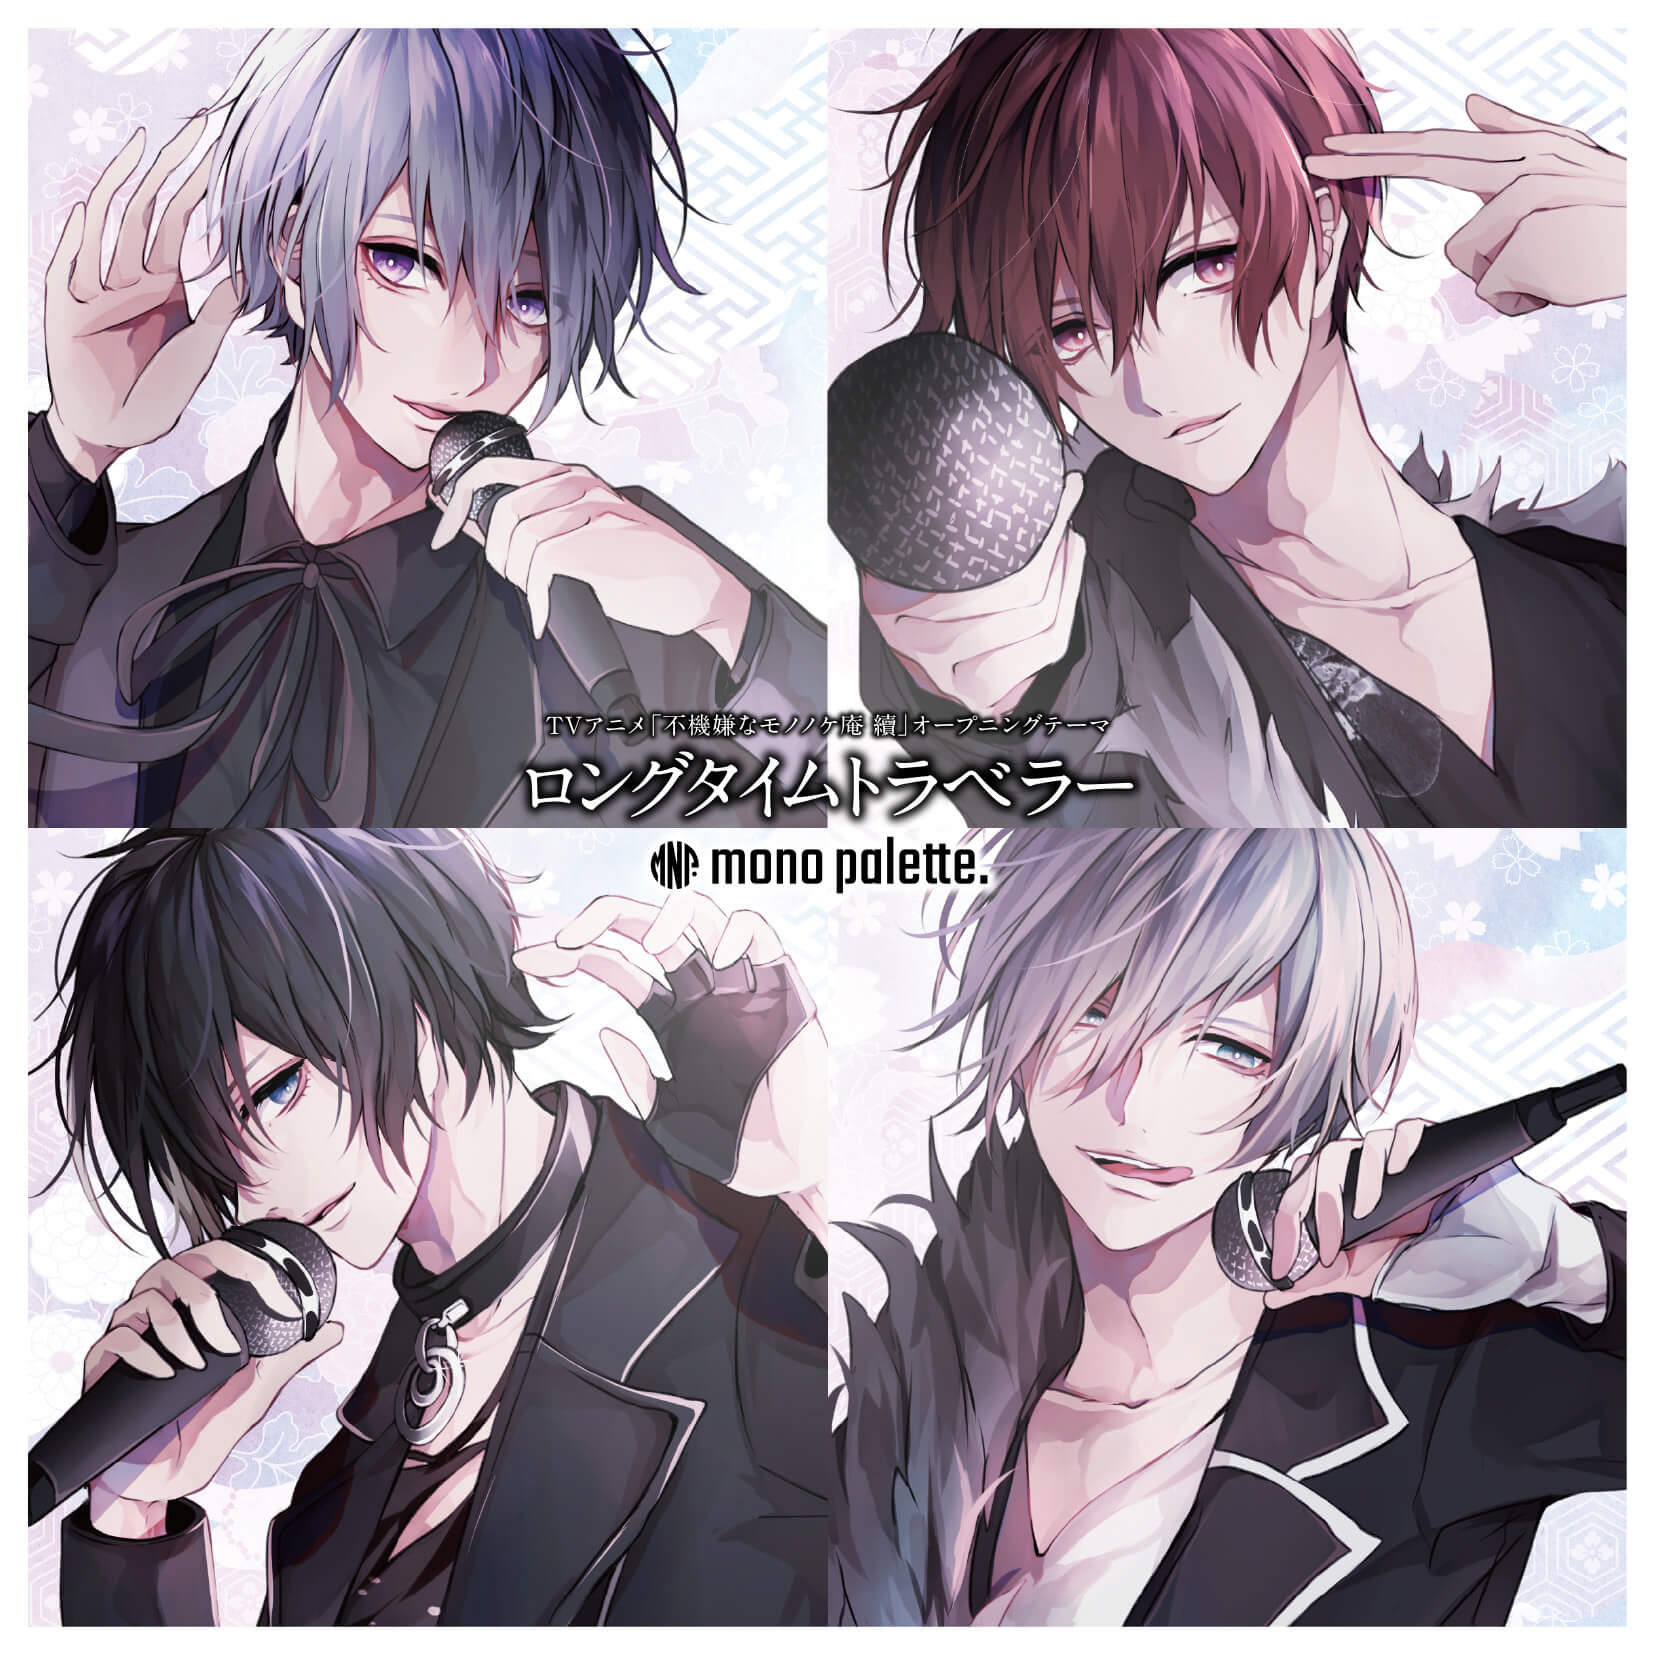 Tv Anime The Morose Mononokean Op Theme Cd Cover Revealed By Mono 10 Palette Is A Four Member Male Vocal Group Made Up Of Members Agein Rim Yukimi And 3 Bu Who Post Their Music On Video Streaming Sites